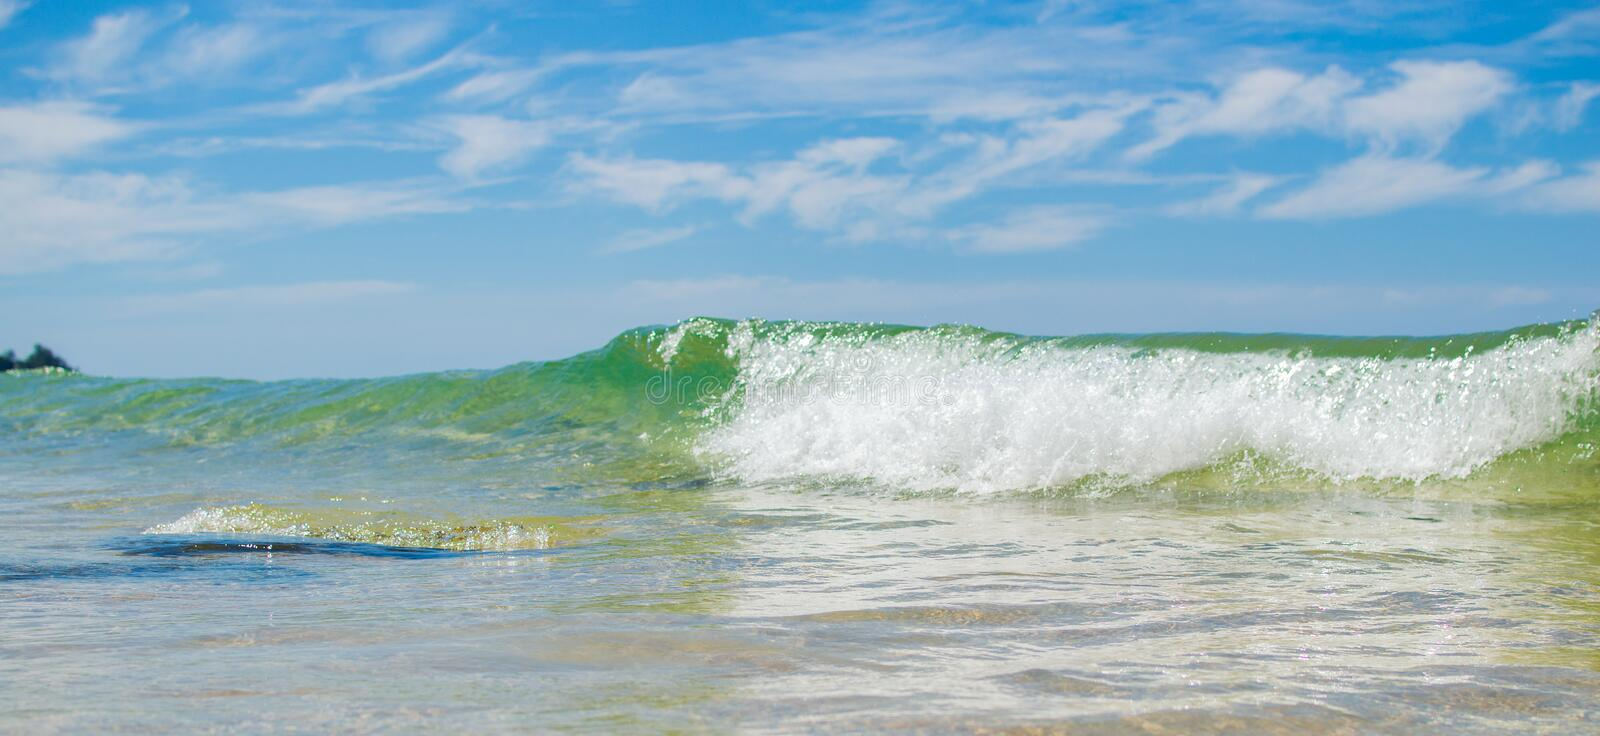 Tropical sea wave close up view stock photo